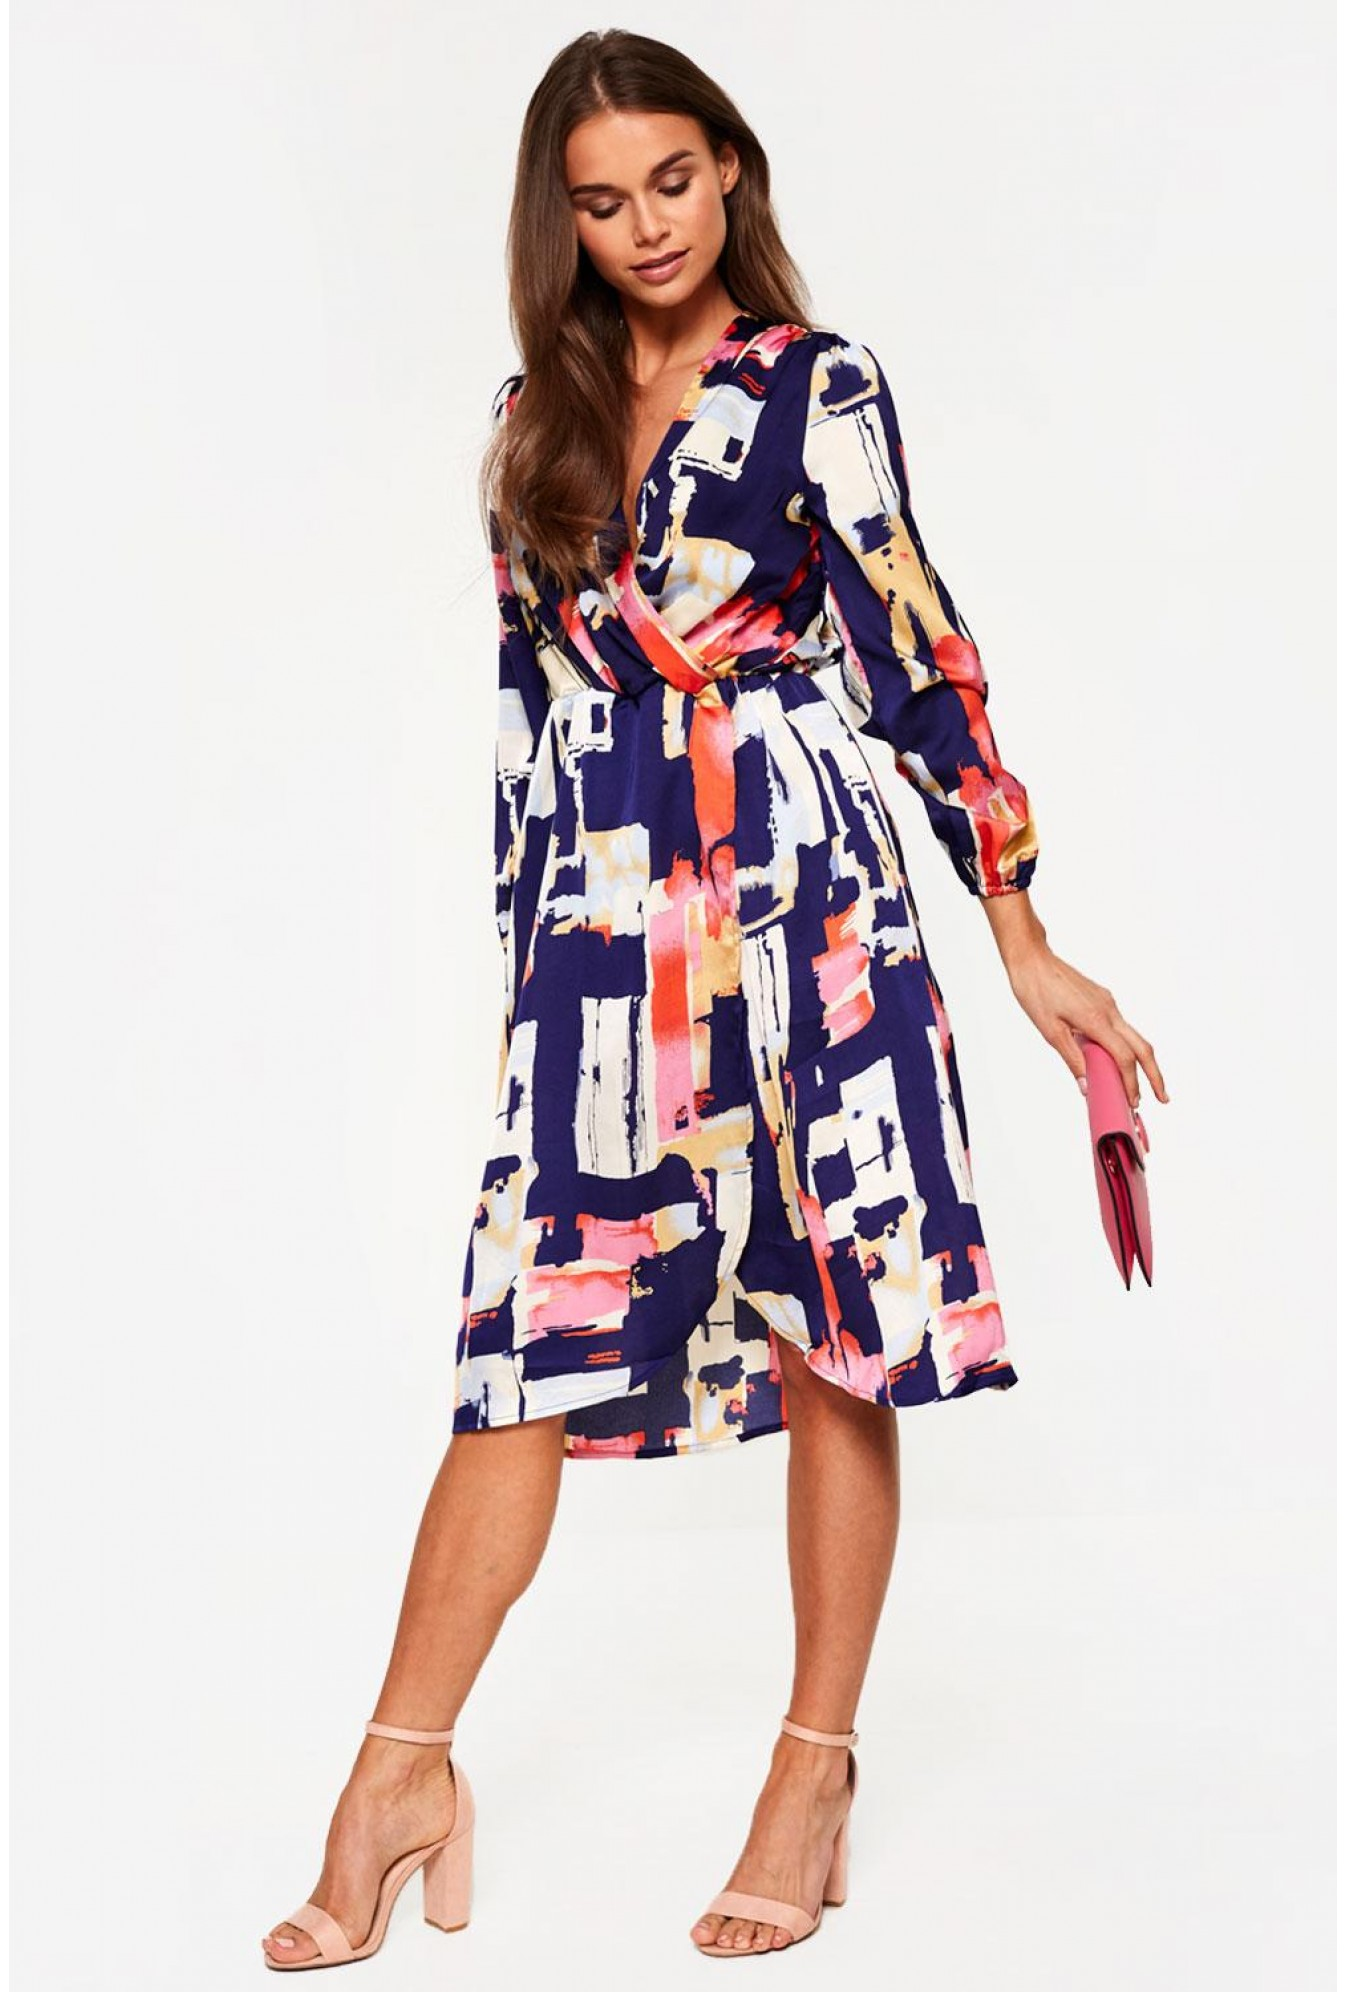 33fe820daca1 More Views. Long Sleeve Wrap Dress in Navy Abstract Print. Video Gallery. Marc  Angelo